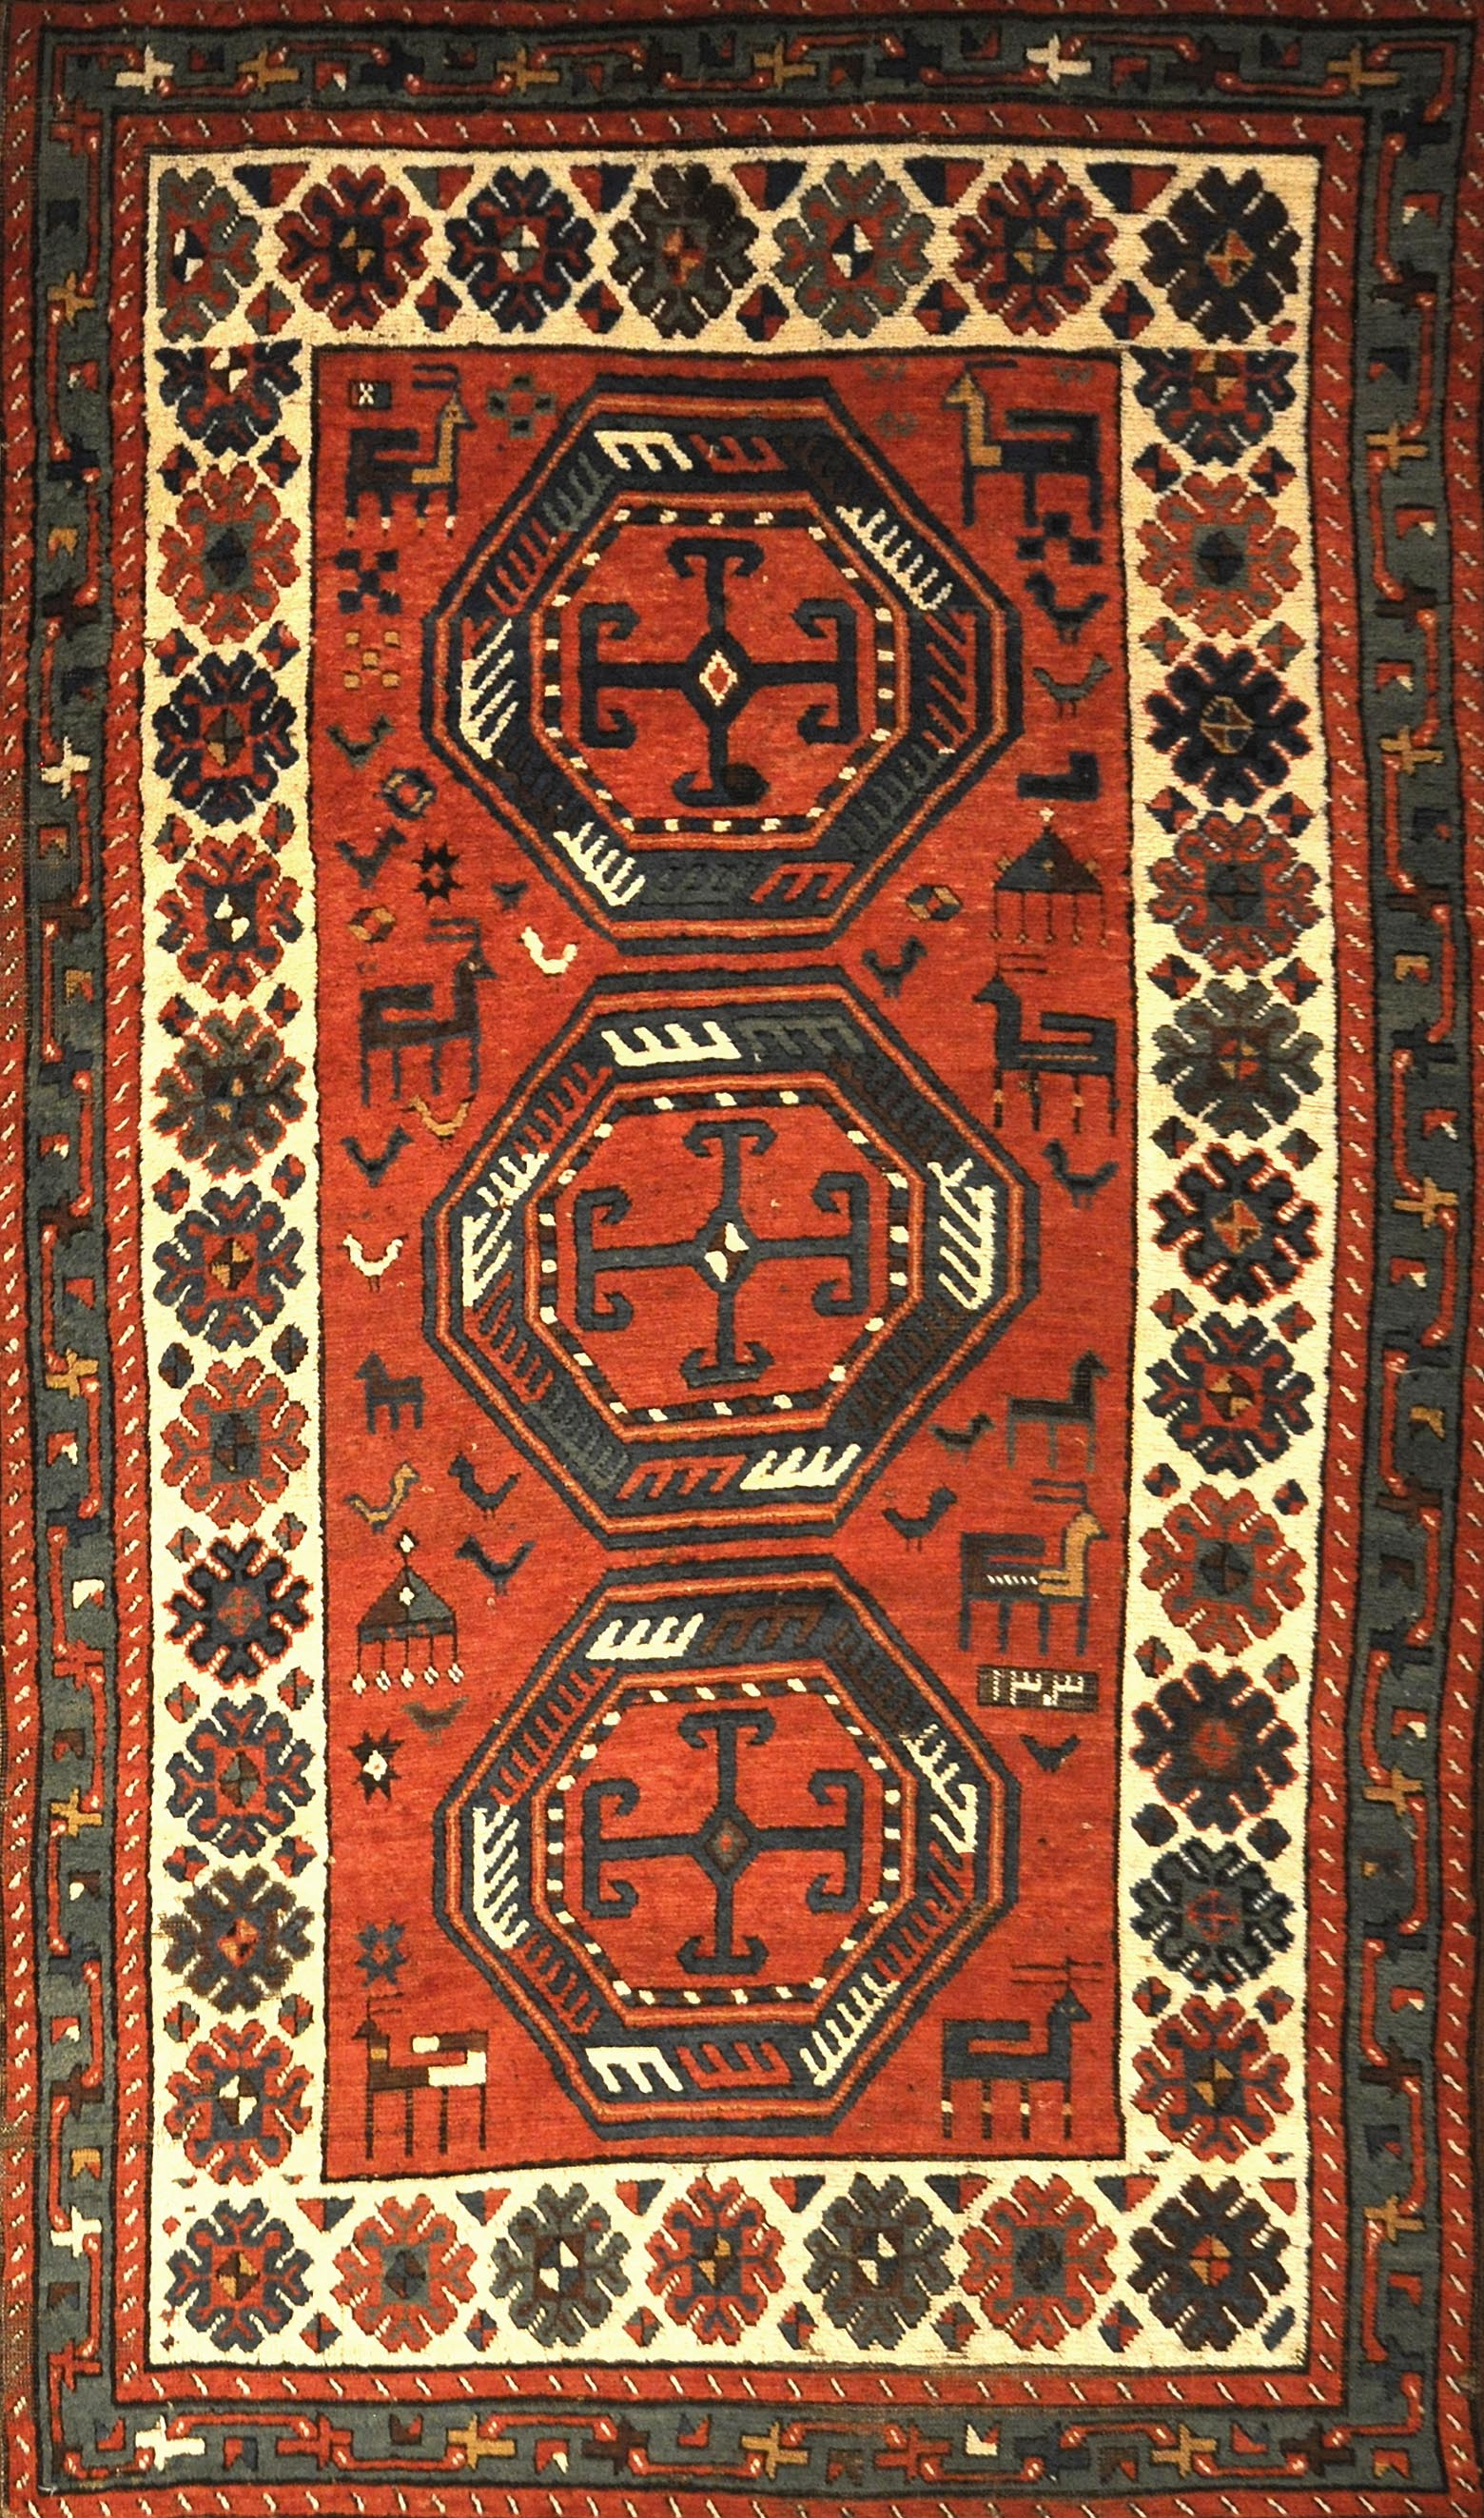 Talish Caucasian Rug Circa 1880. A piece of genuine authentic antique woven carpet art sold by the Santa Barbara Design Center, Rugs and More.